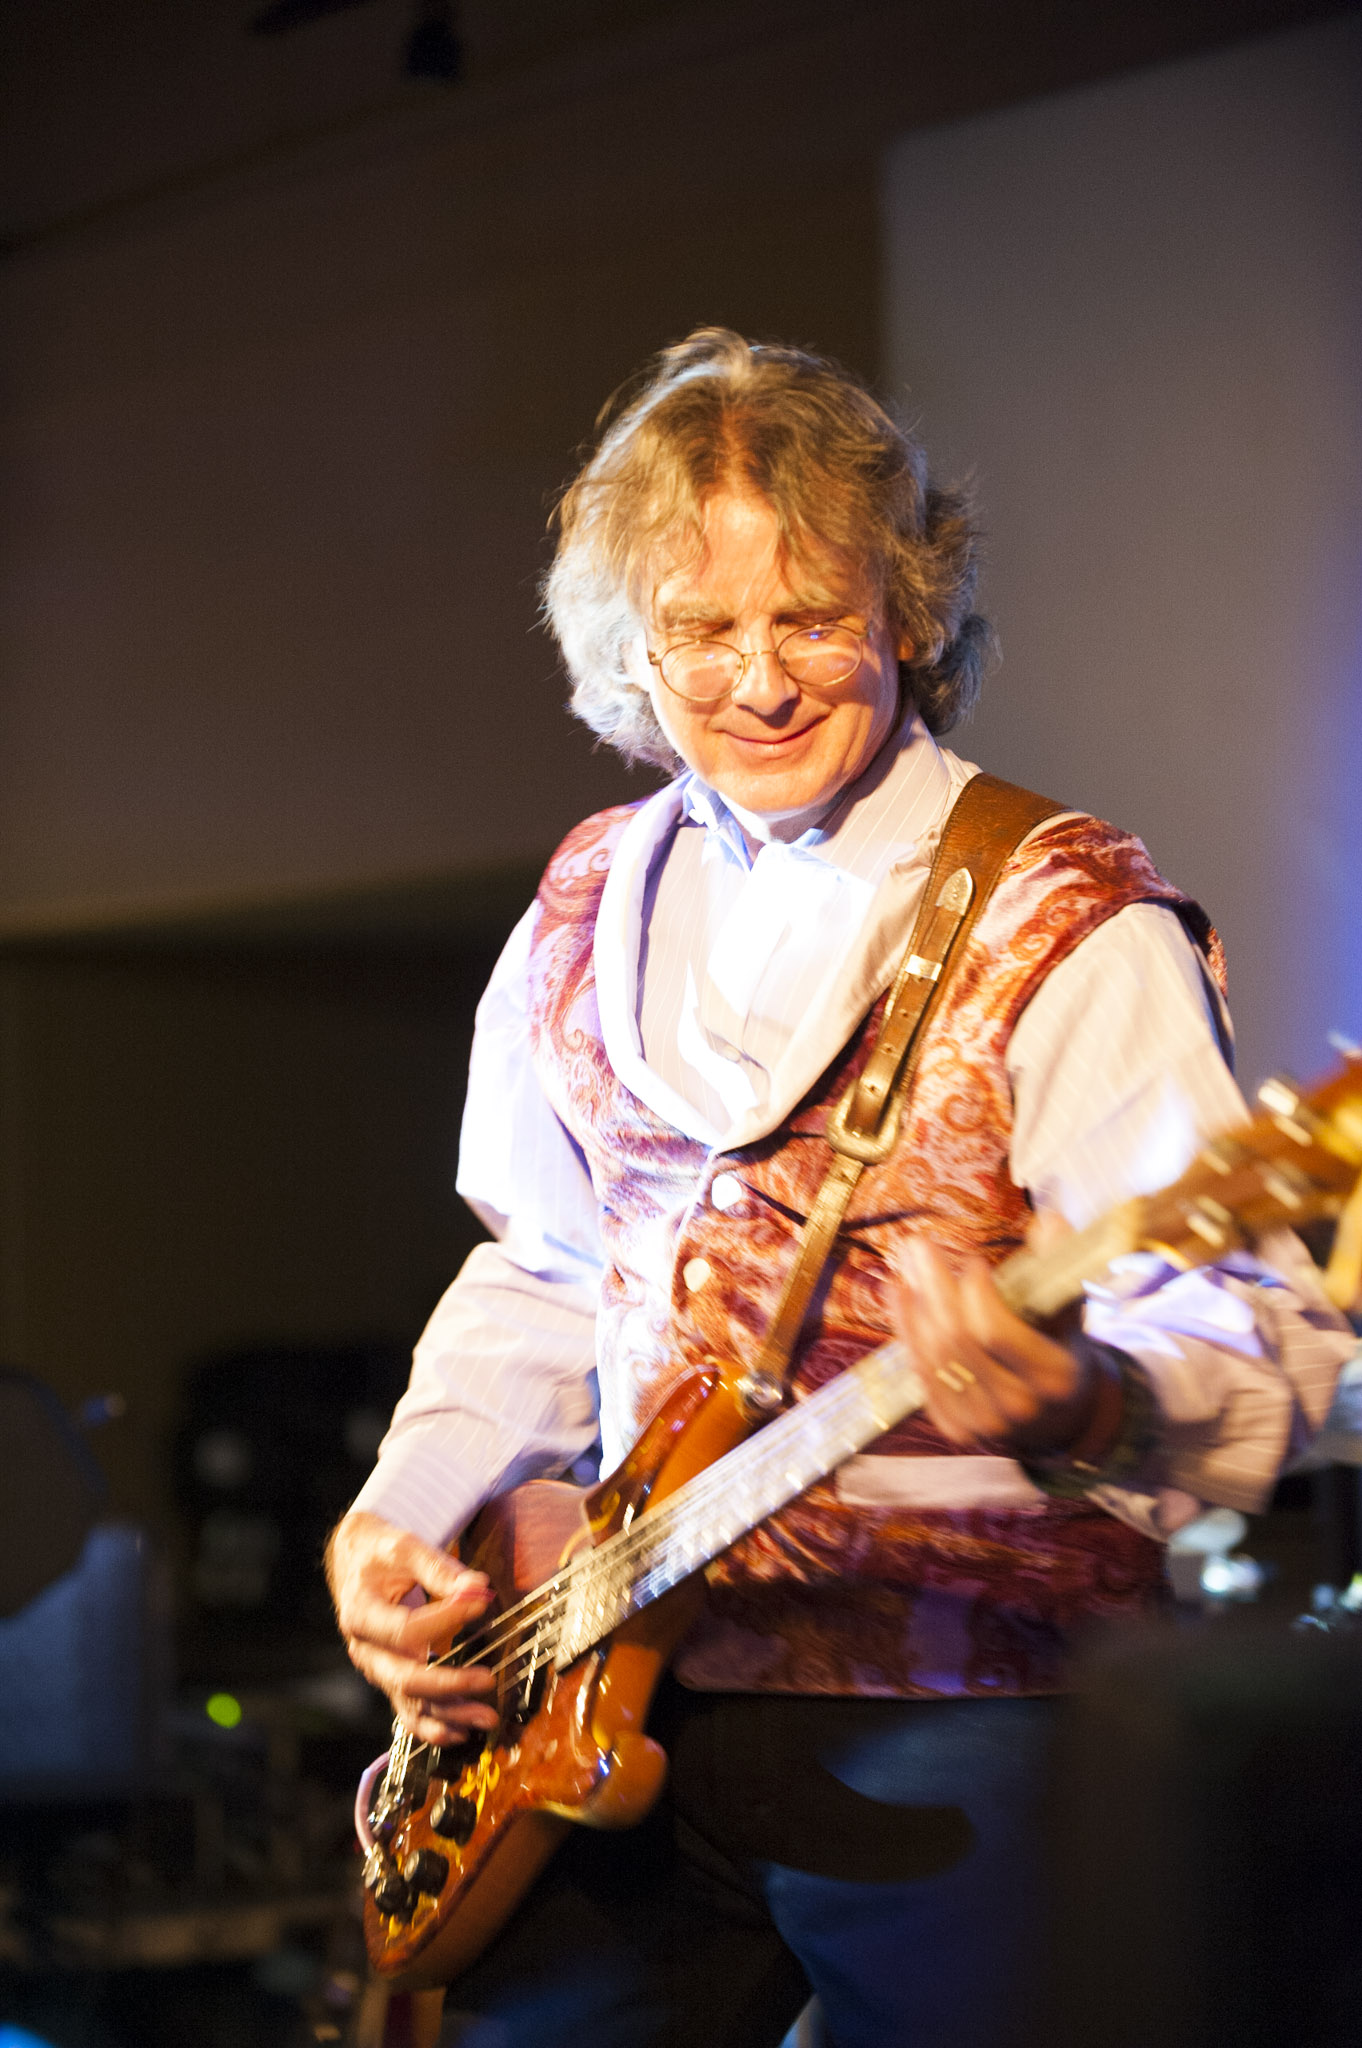 STAR // Connor Gibson   Bassist and vocalist Roger McNamee took the stage at Sally Tomatoes for a psychedelic evening.